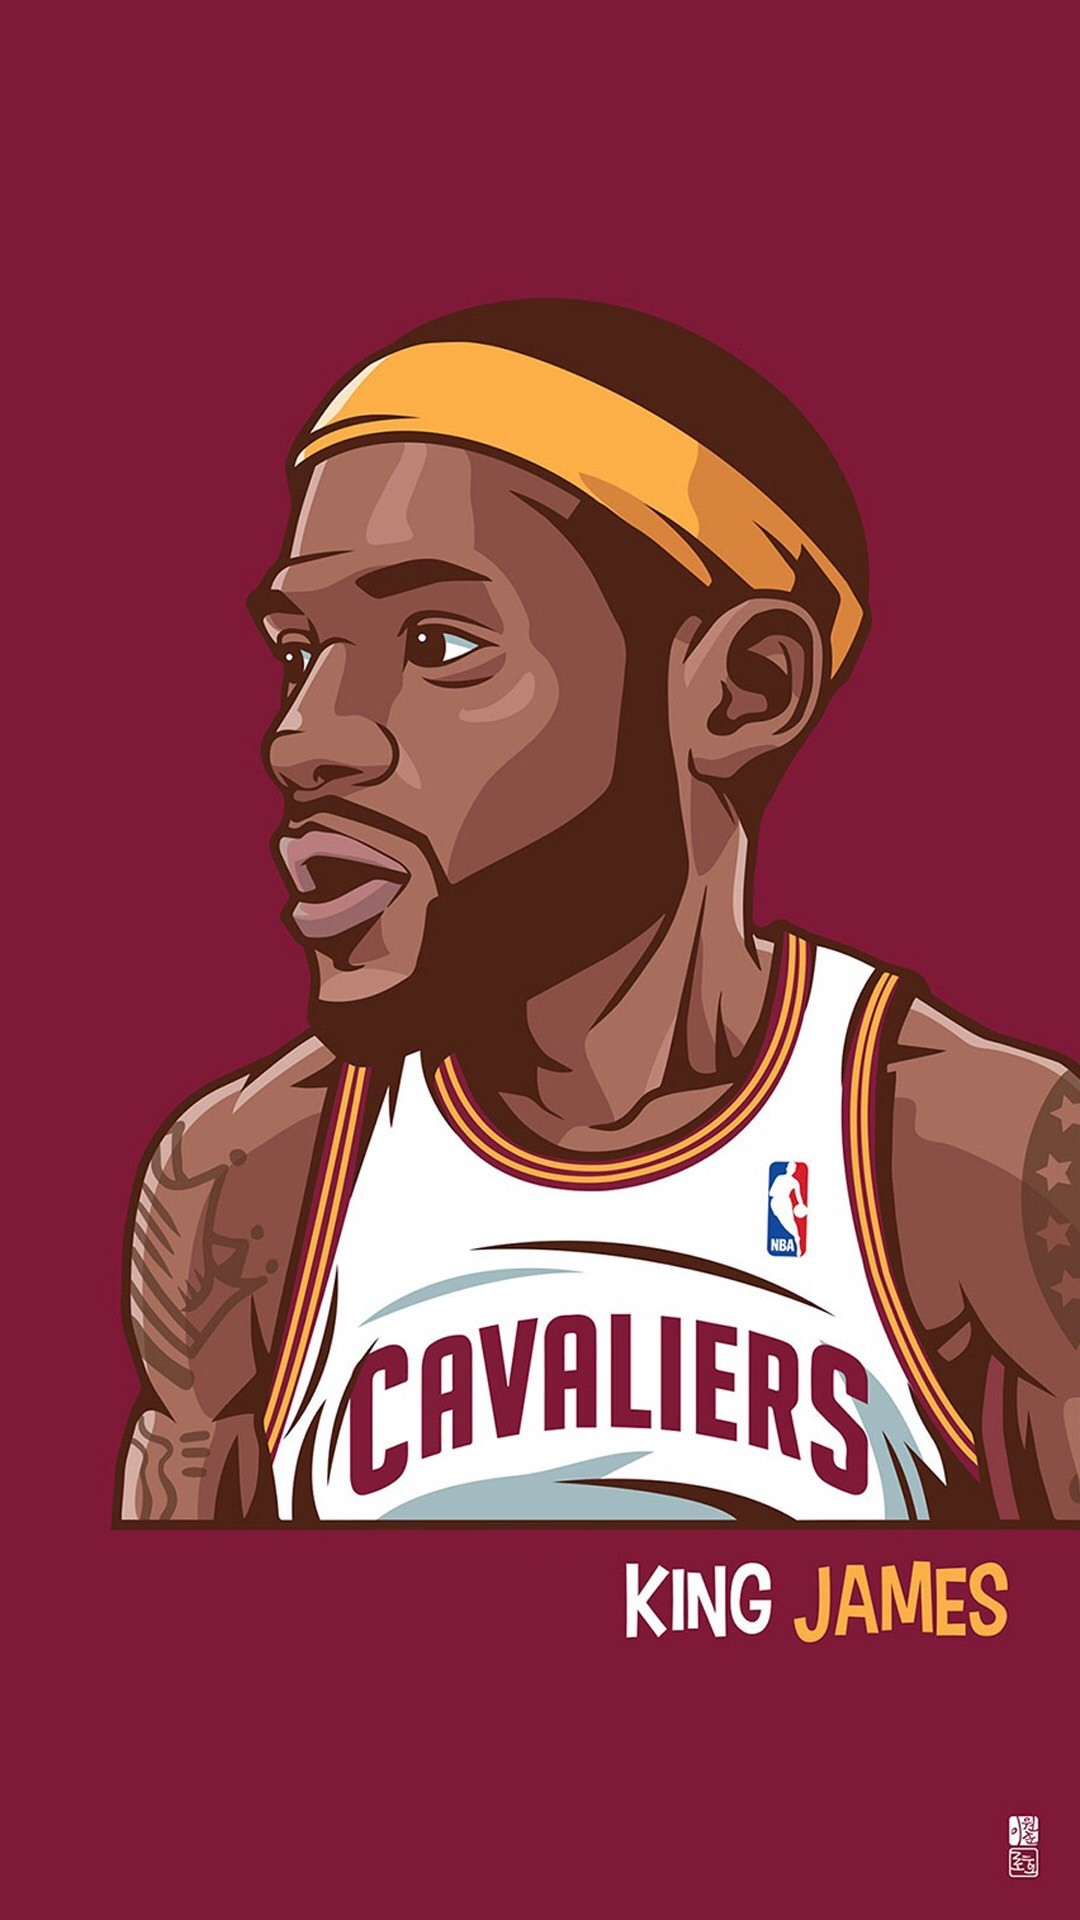 LeBron James HD Wallpapers Backgrounds Wallpaper   HD Wallpapers    Pinterest   LeBron James, Wallpaper and Wallpaper backgrounds